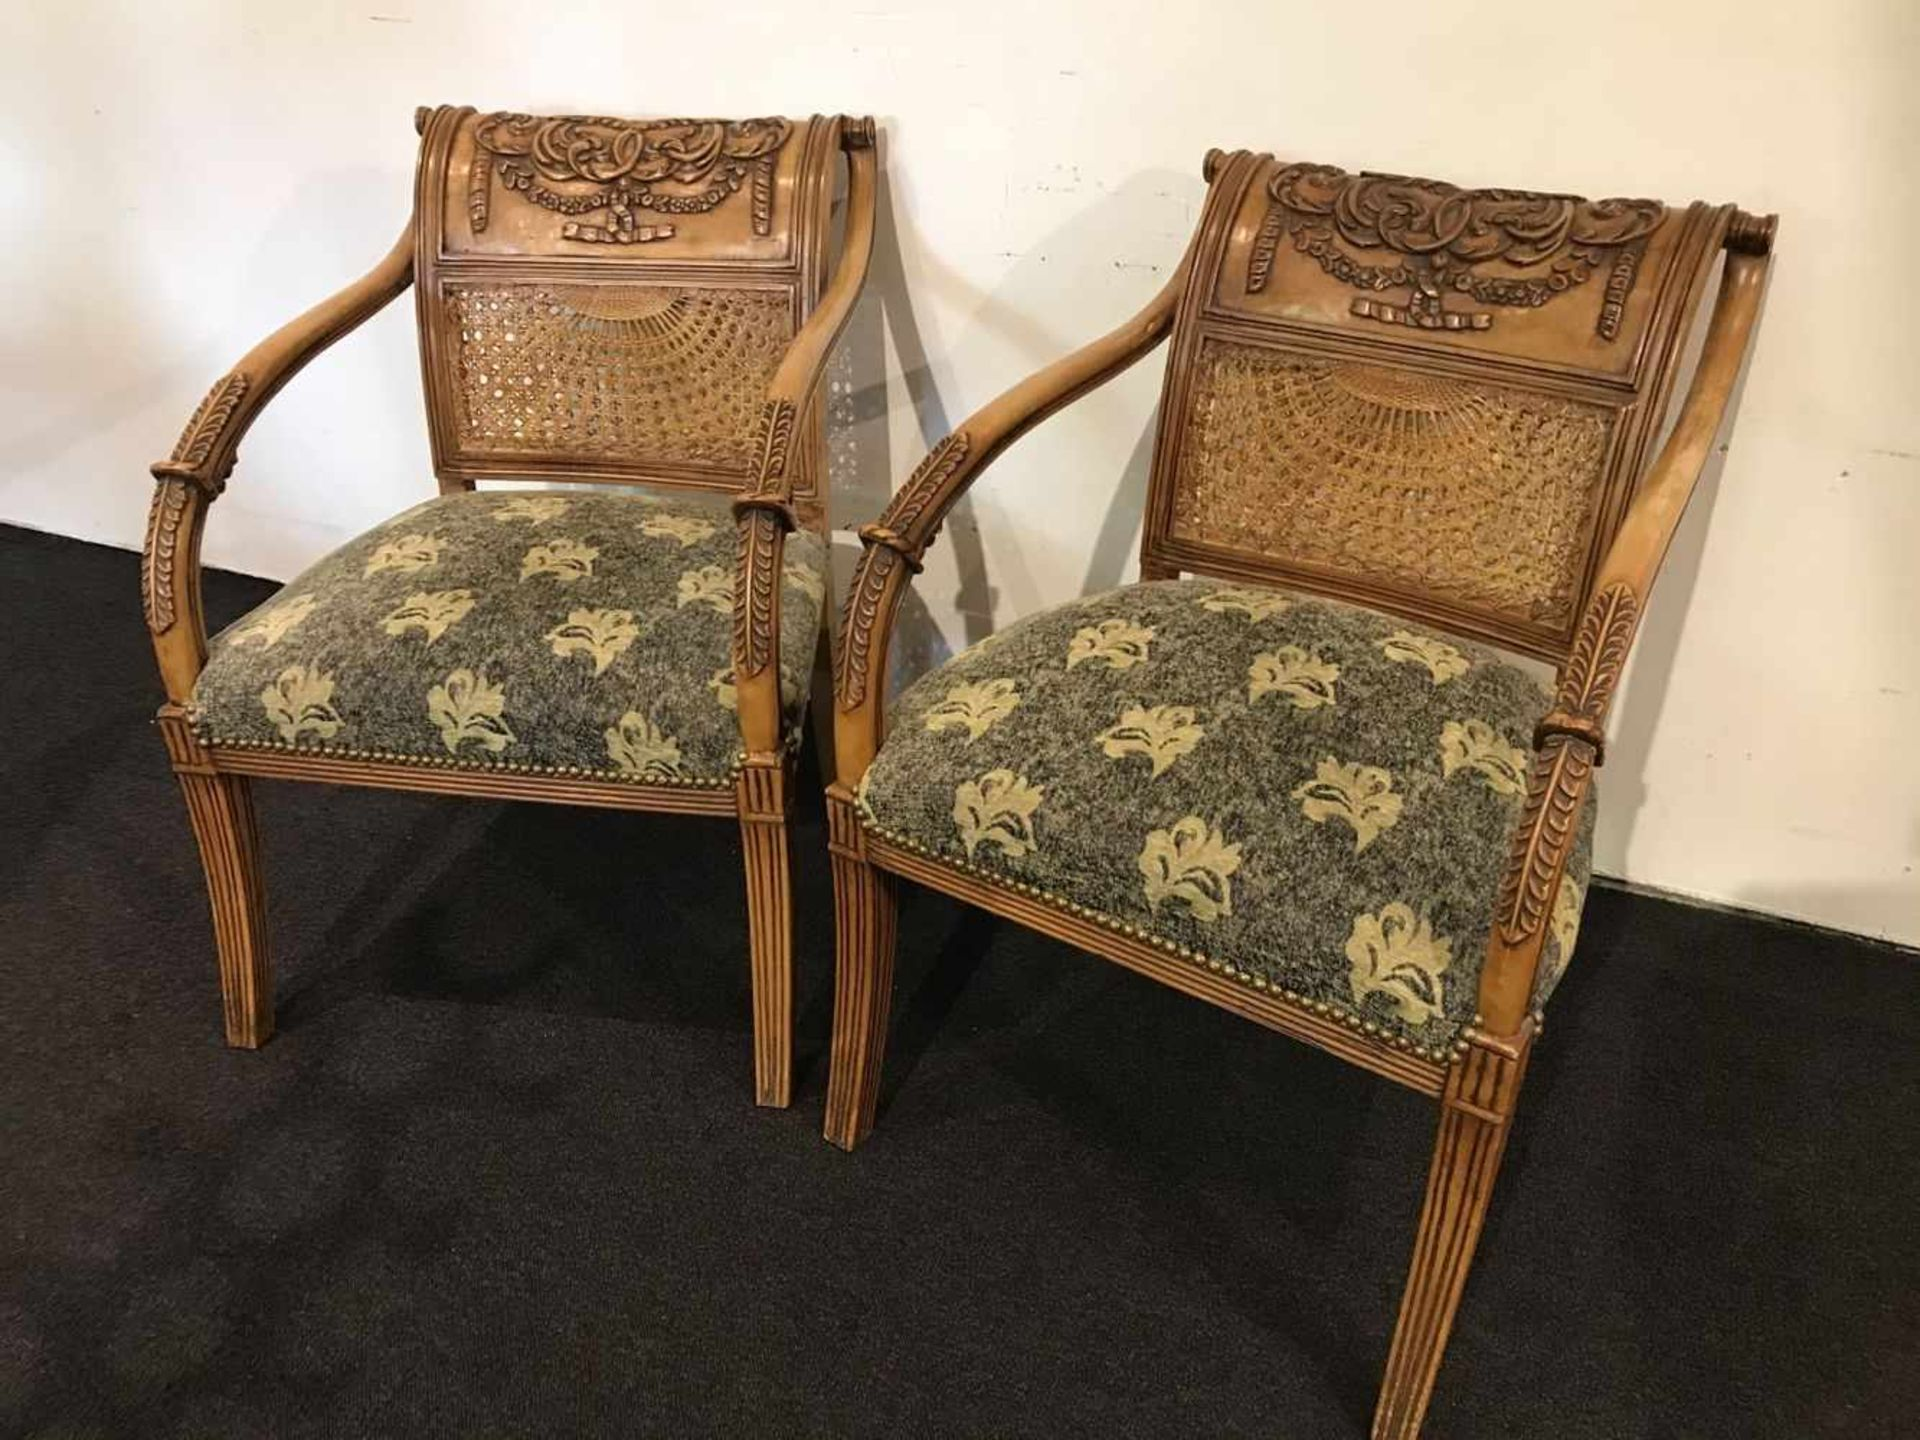 Los 76 - Couple chairs richly decorated with canage and fabric seat